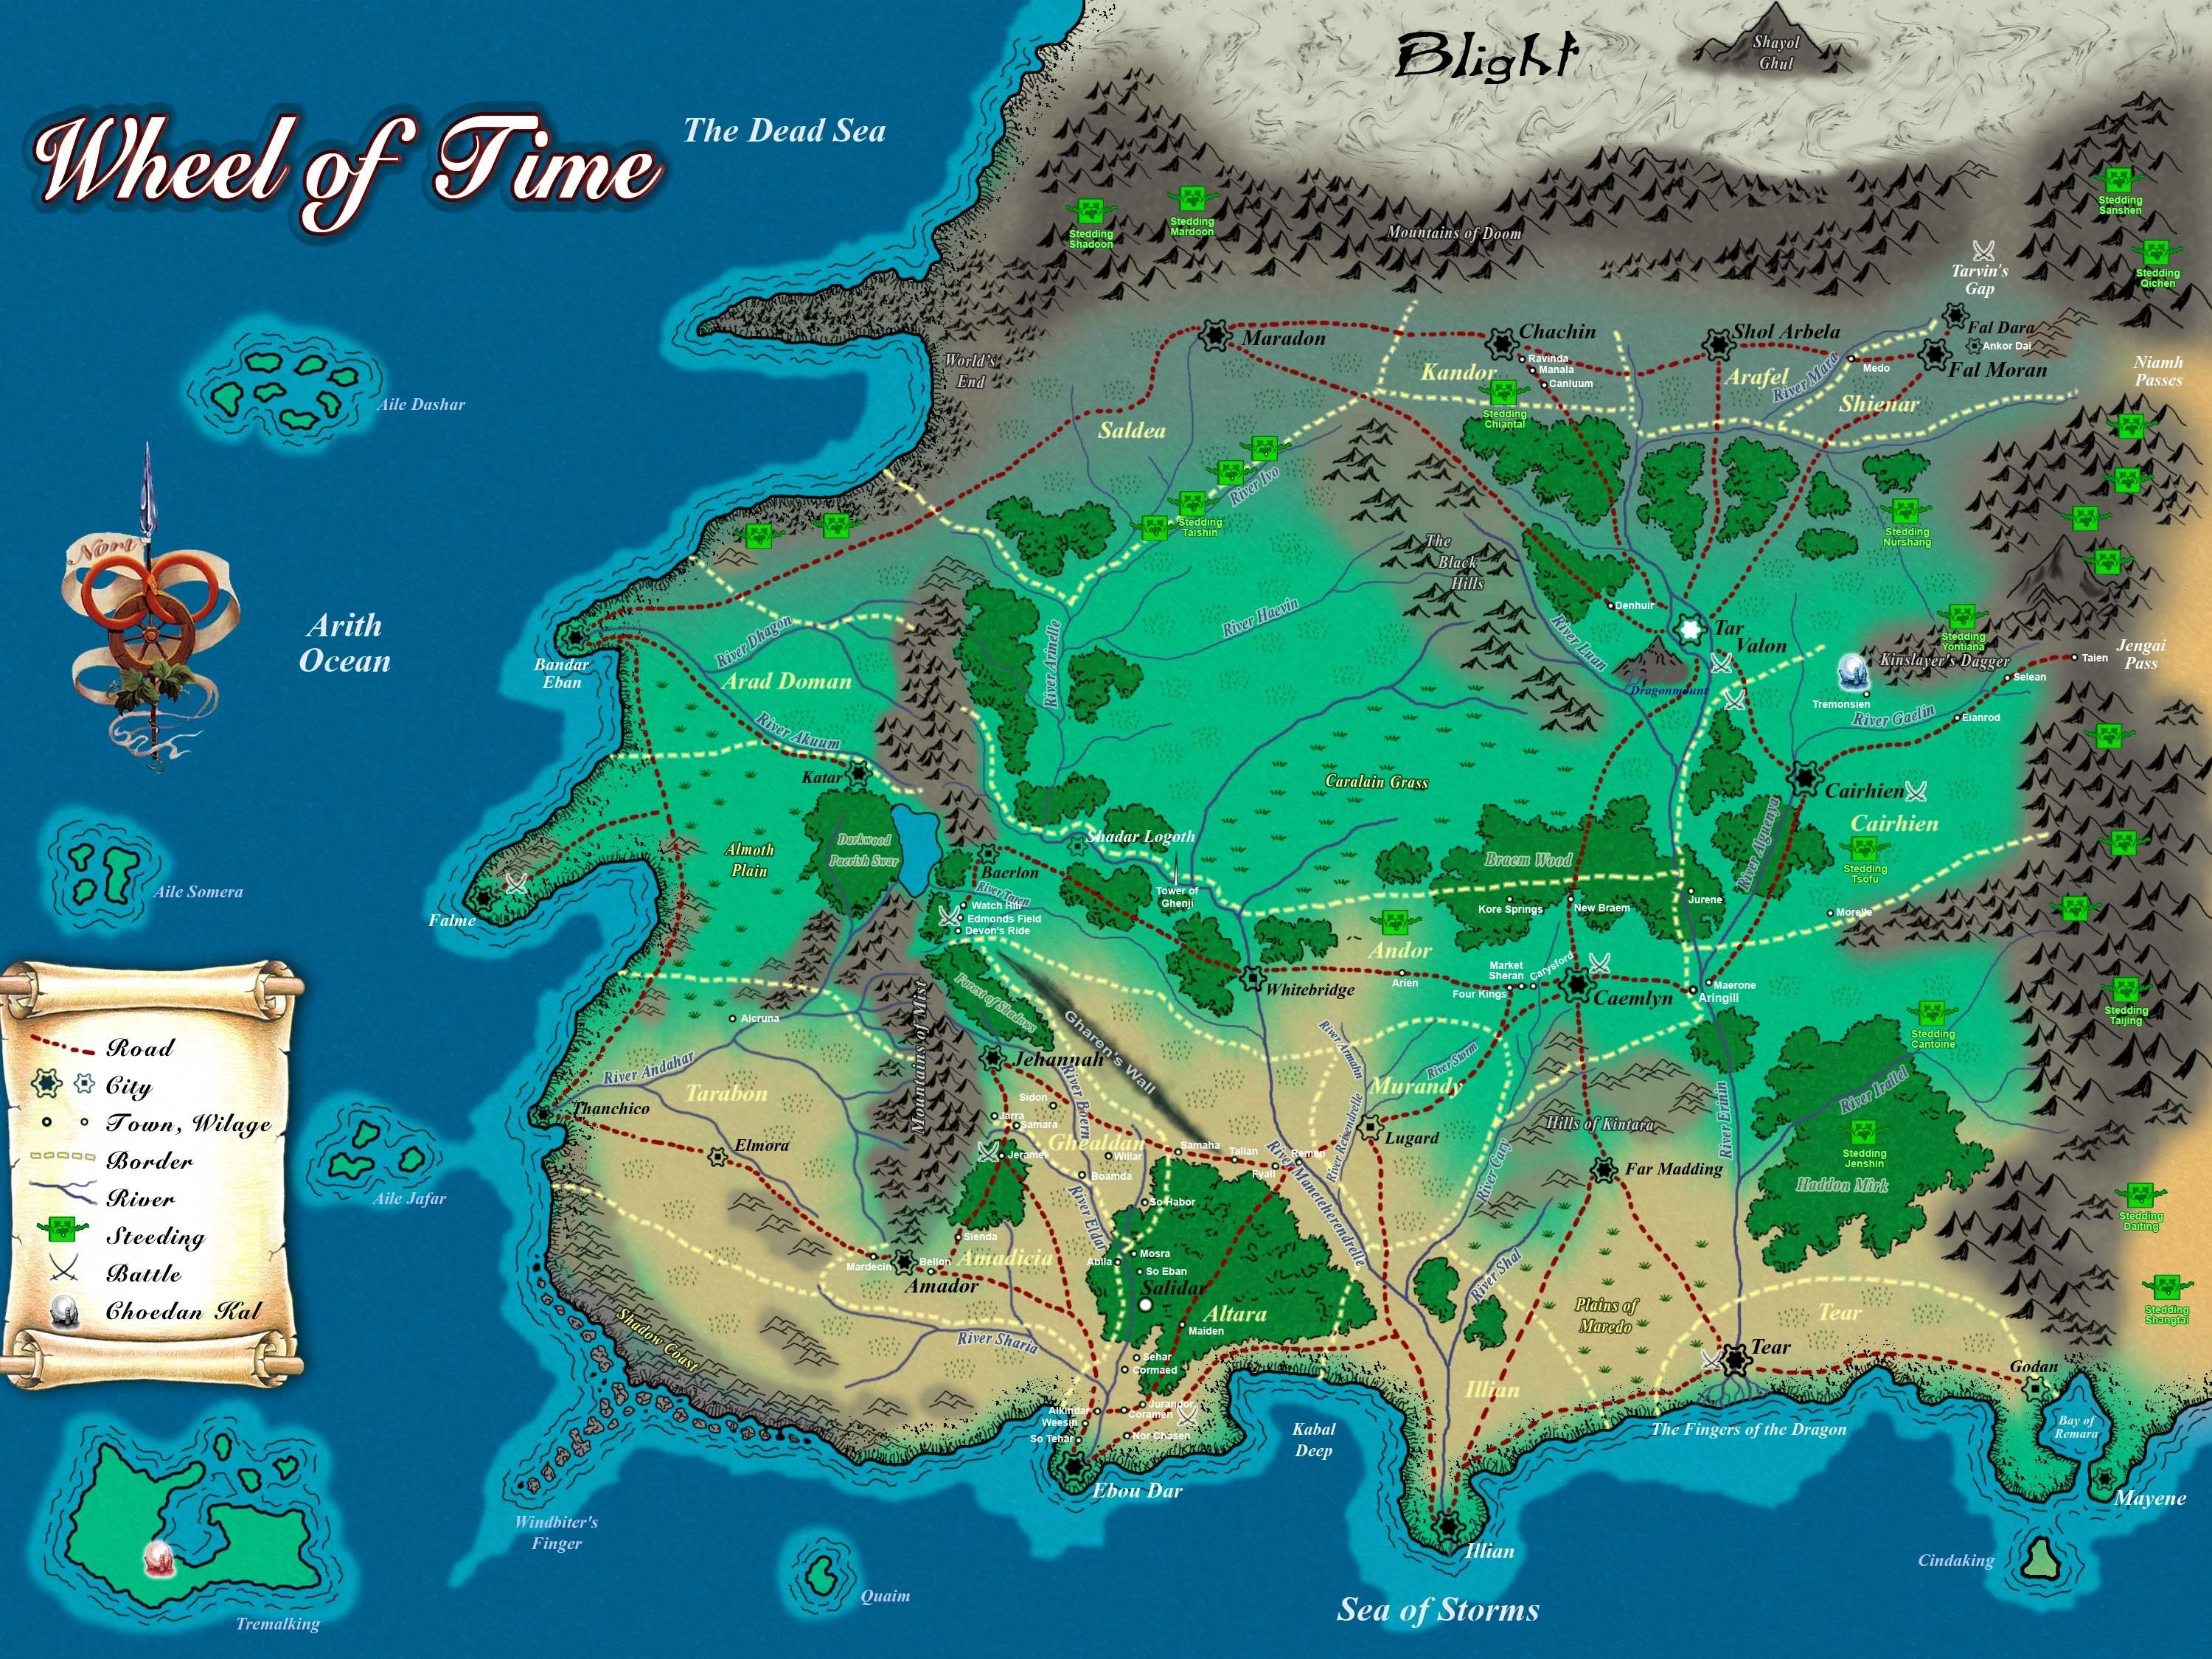 robert jordan wheel of time map  alternate history discussion board character routes. robert jordan wheel of time map  alternate history discussion